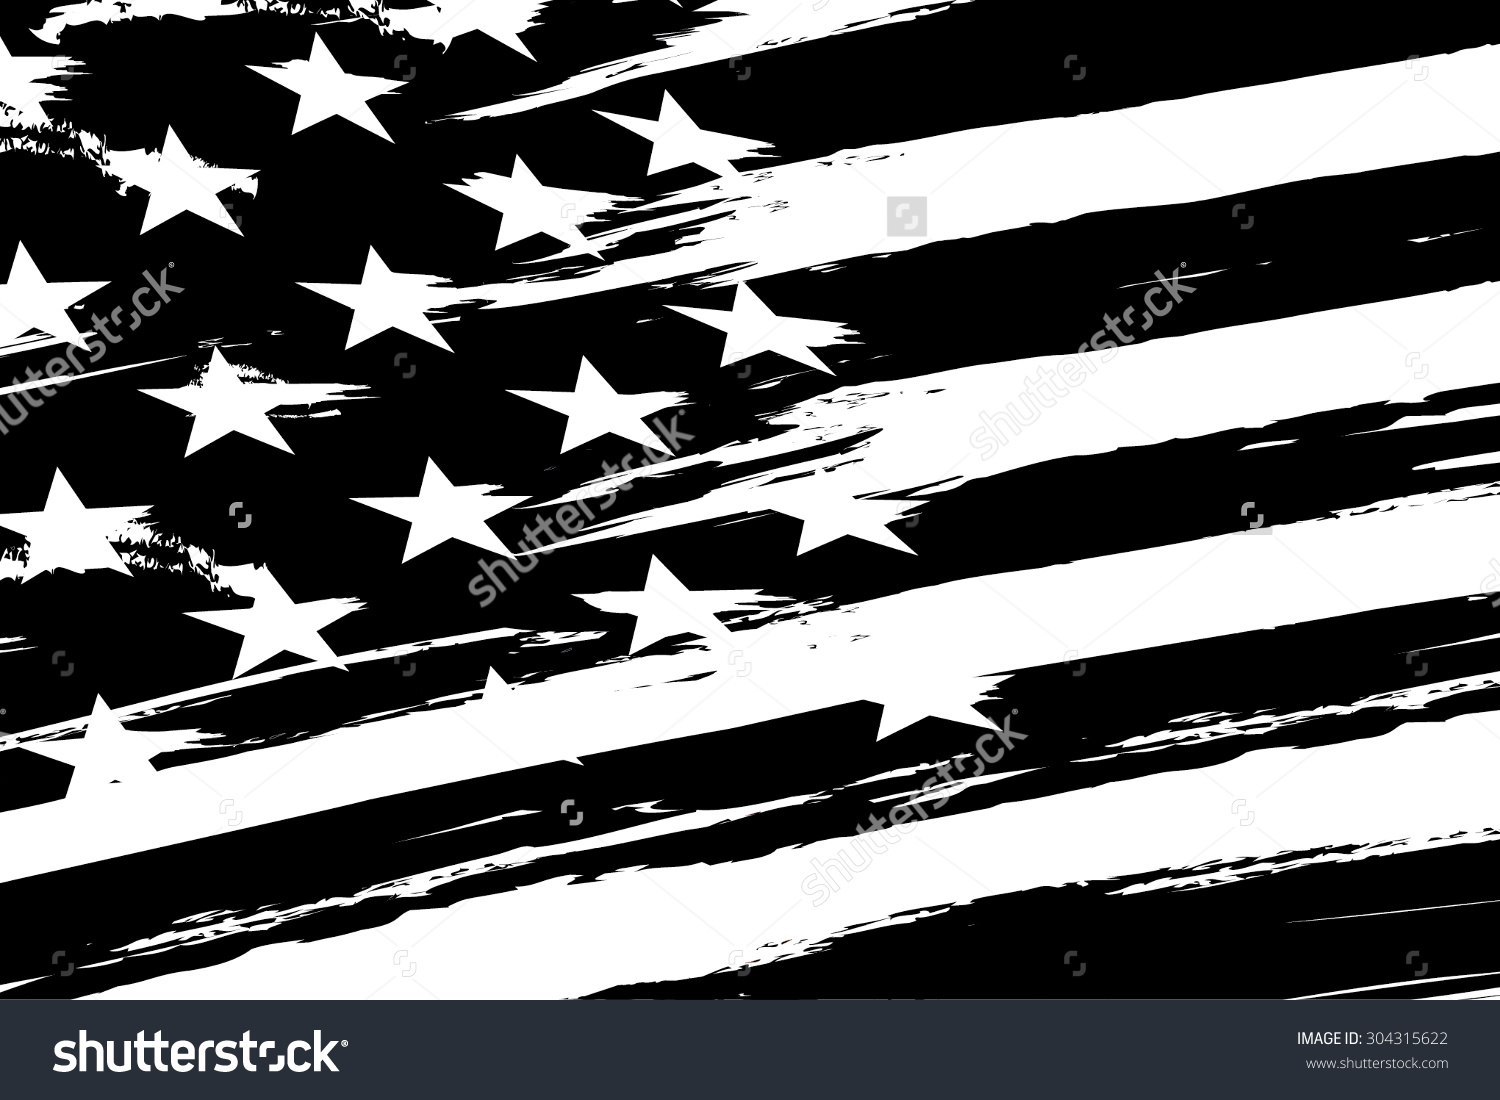 American flag black and white vector clipart.